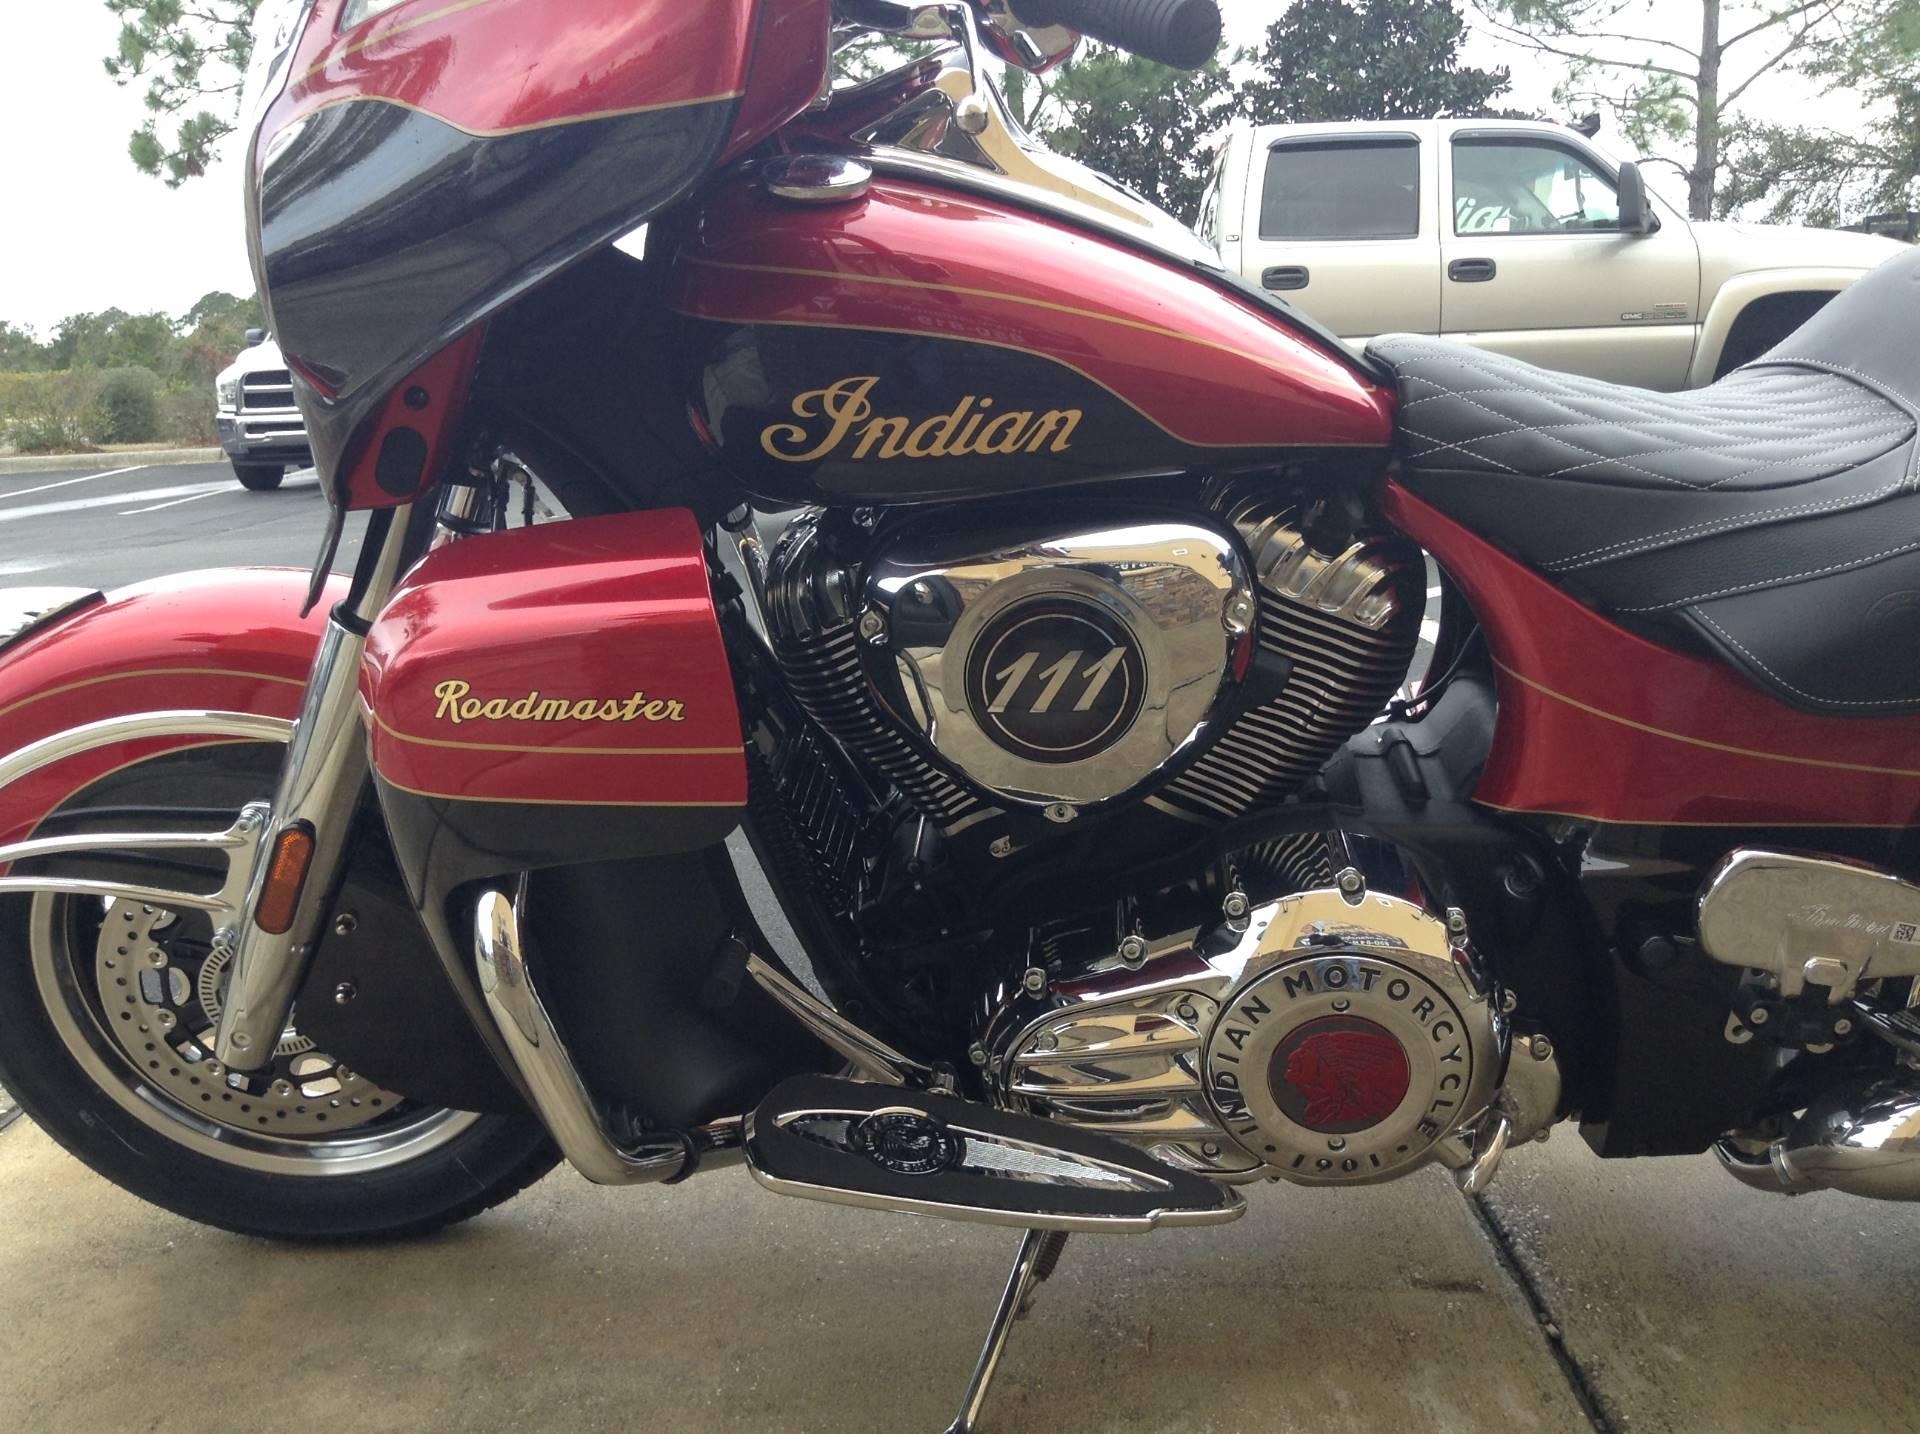 2019 Indian ROAD MASTER ELITE in Panama City Beach, Florida - Photo 13